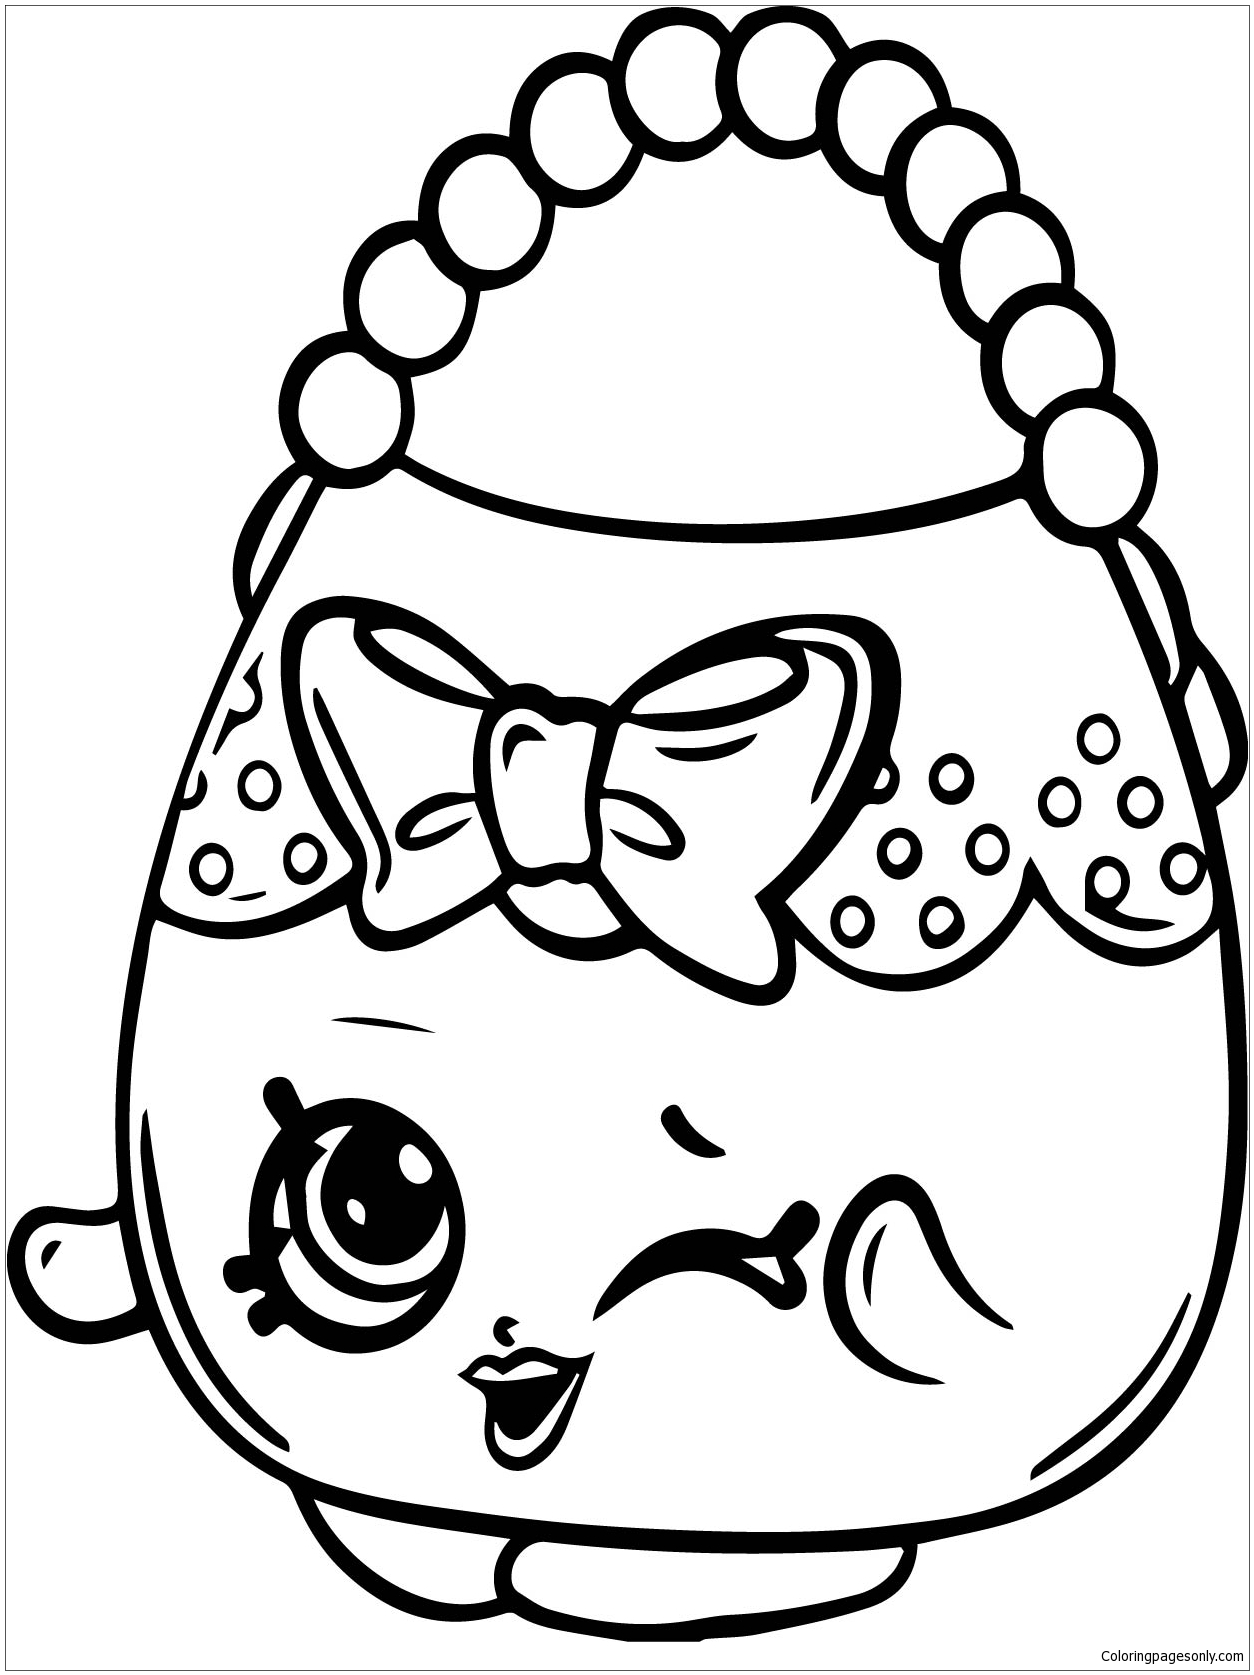 724 Best Colour images | Coloring pages, Coloring books, Adult ... | 1675x1254